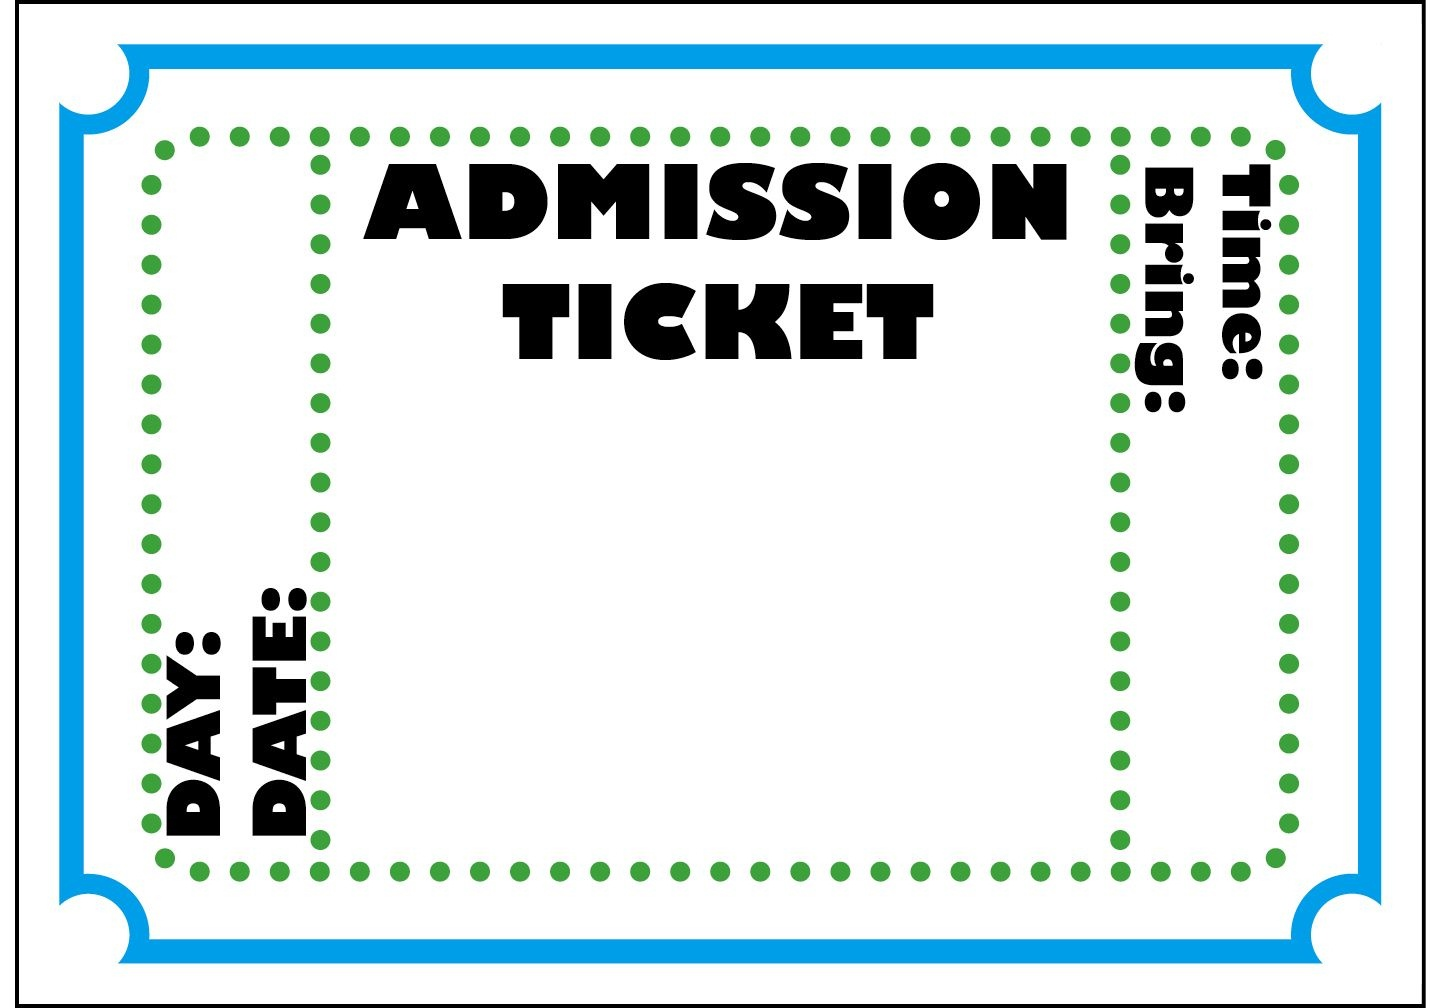 Mormon Share } Admission Ticket | Colossal Coaster World Vbs 2013 - Free Printable Admission Ticket Template